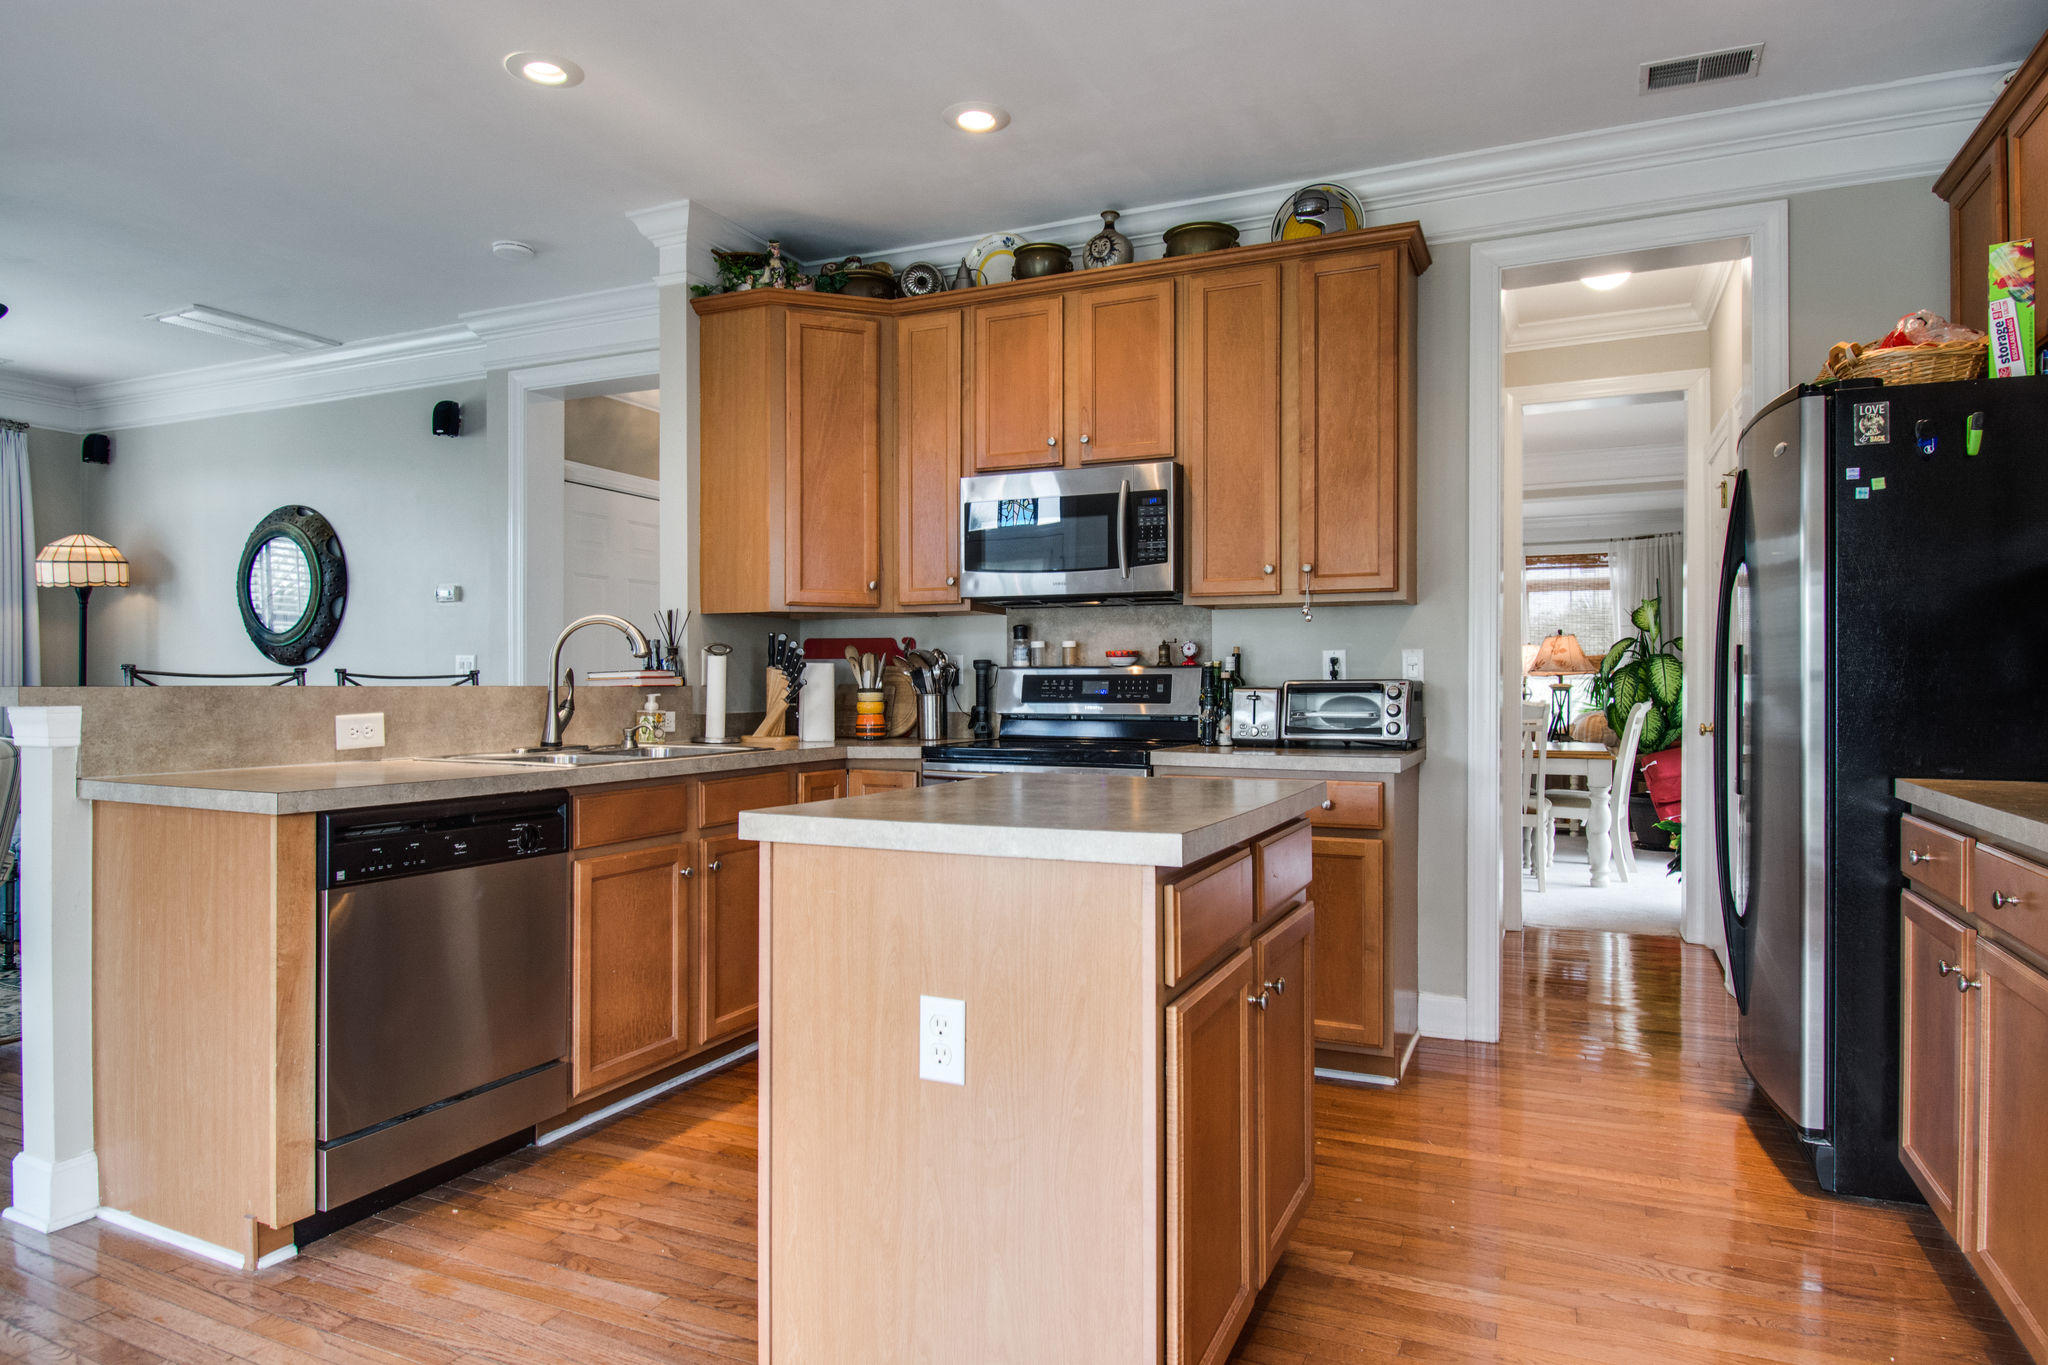 Rivertowne On The Wando Homes For Sale - 2226 Marsh, Mount Pleasant, SC - 26